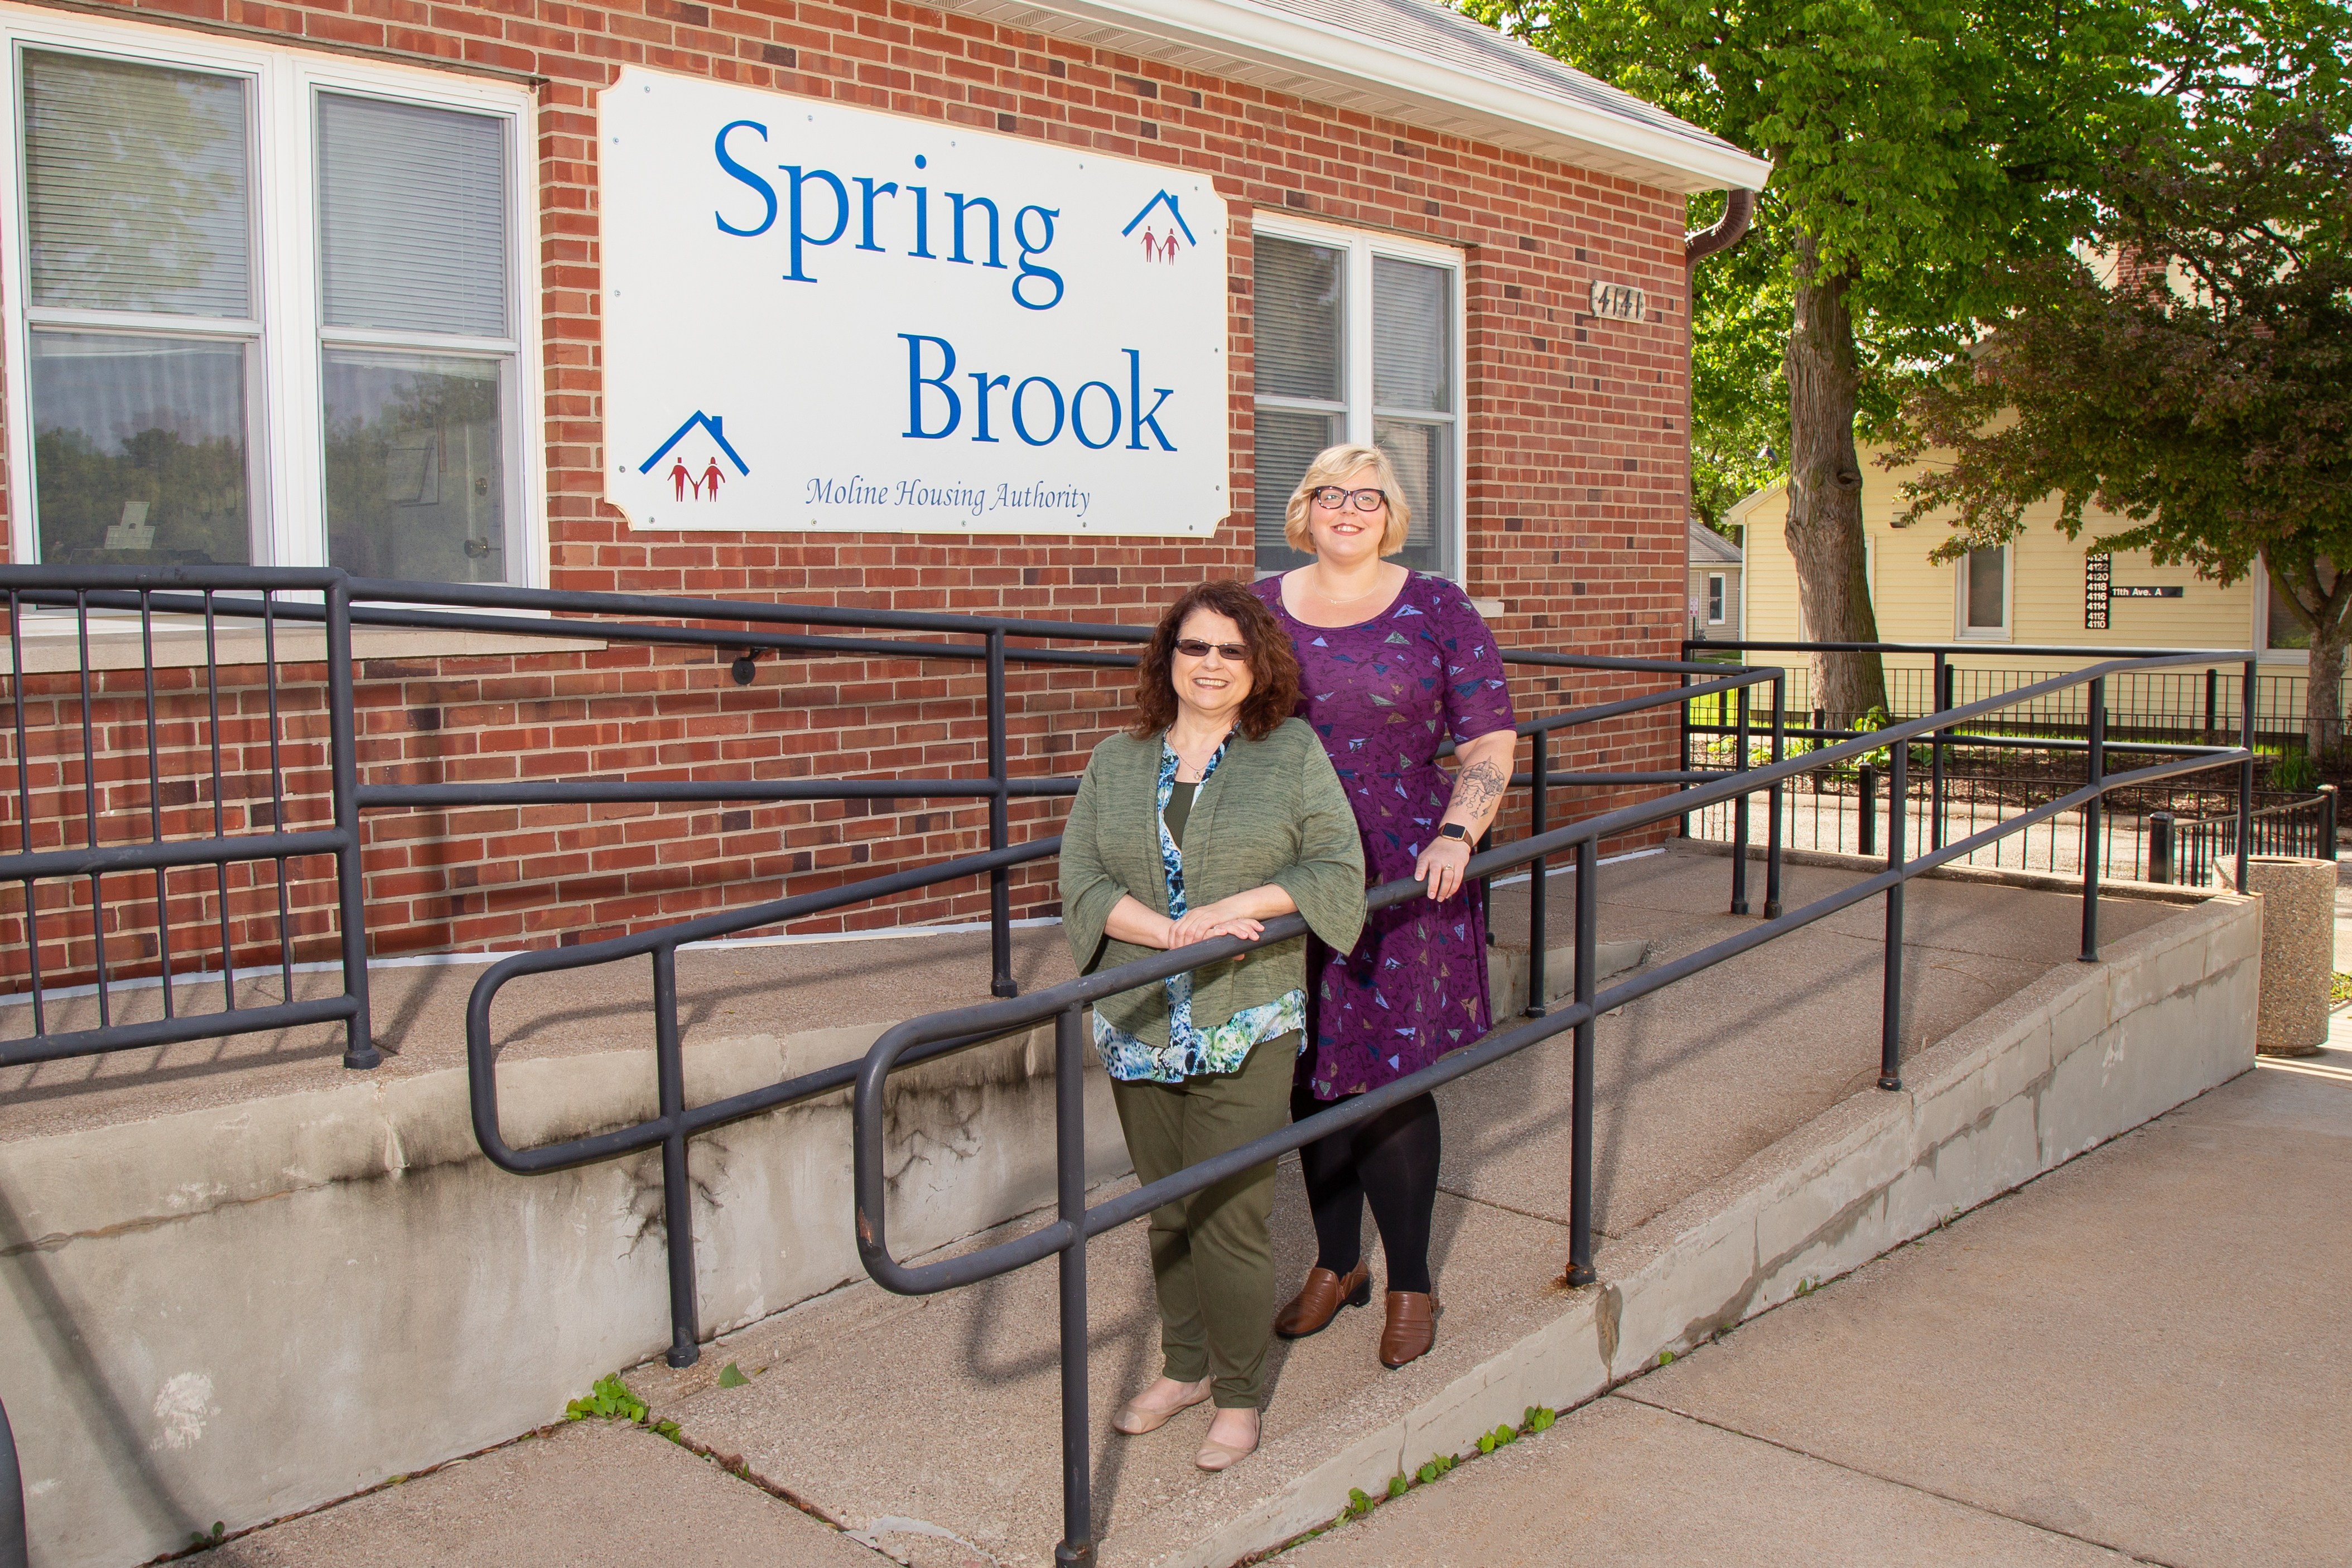 Section 8 | Moline Housing Authority